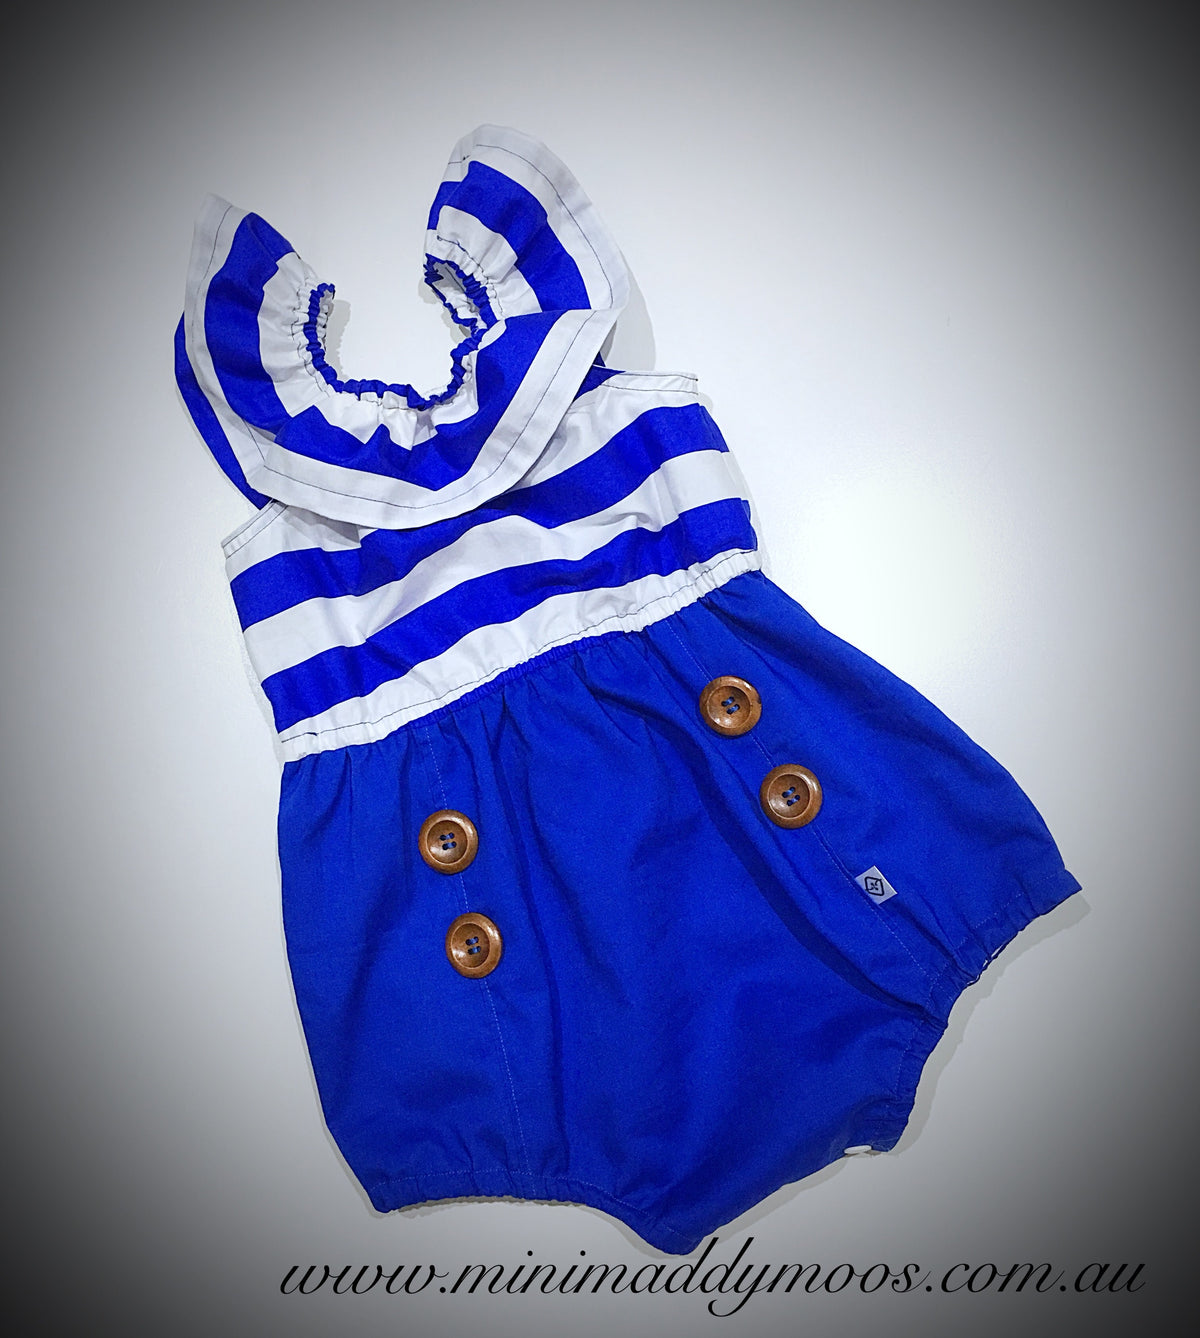 Custom Monroe Playsuit - Mini Maddy Moo's